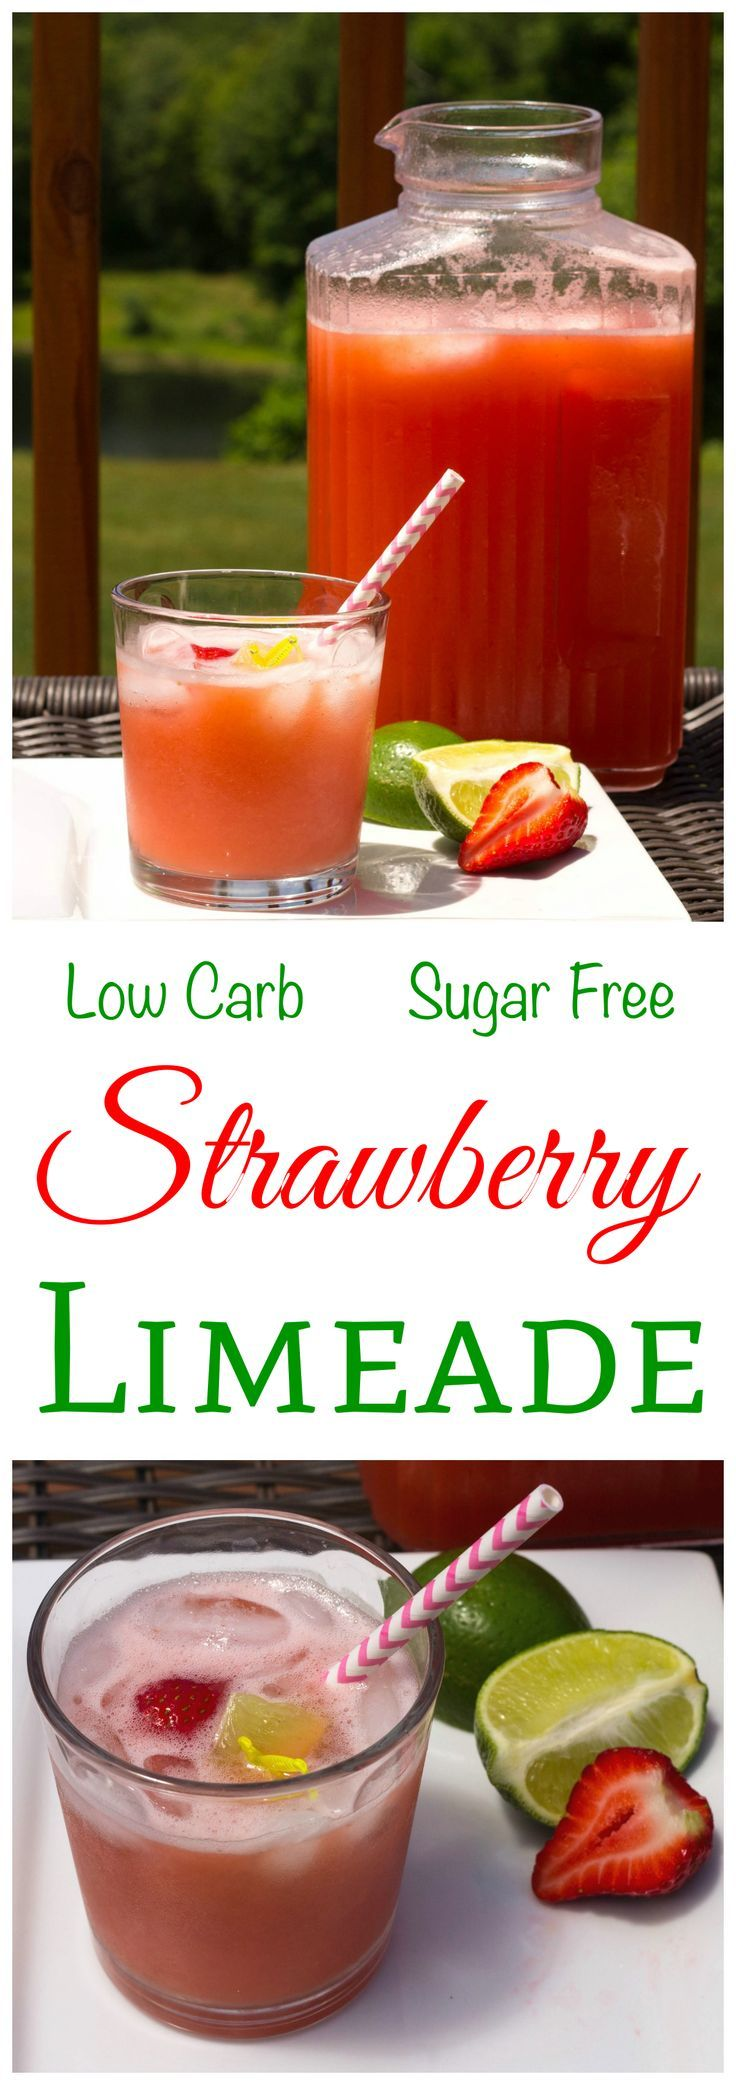 Cold drinks are a welcome treat during hot summer days. This low carb sugar free strawberry limeade is a refreshing drink to quench thirst and cool down.